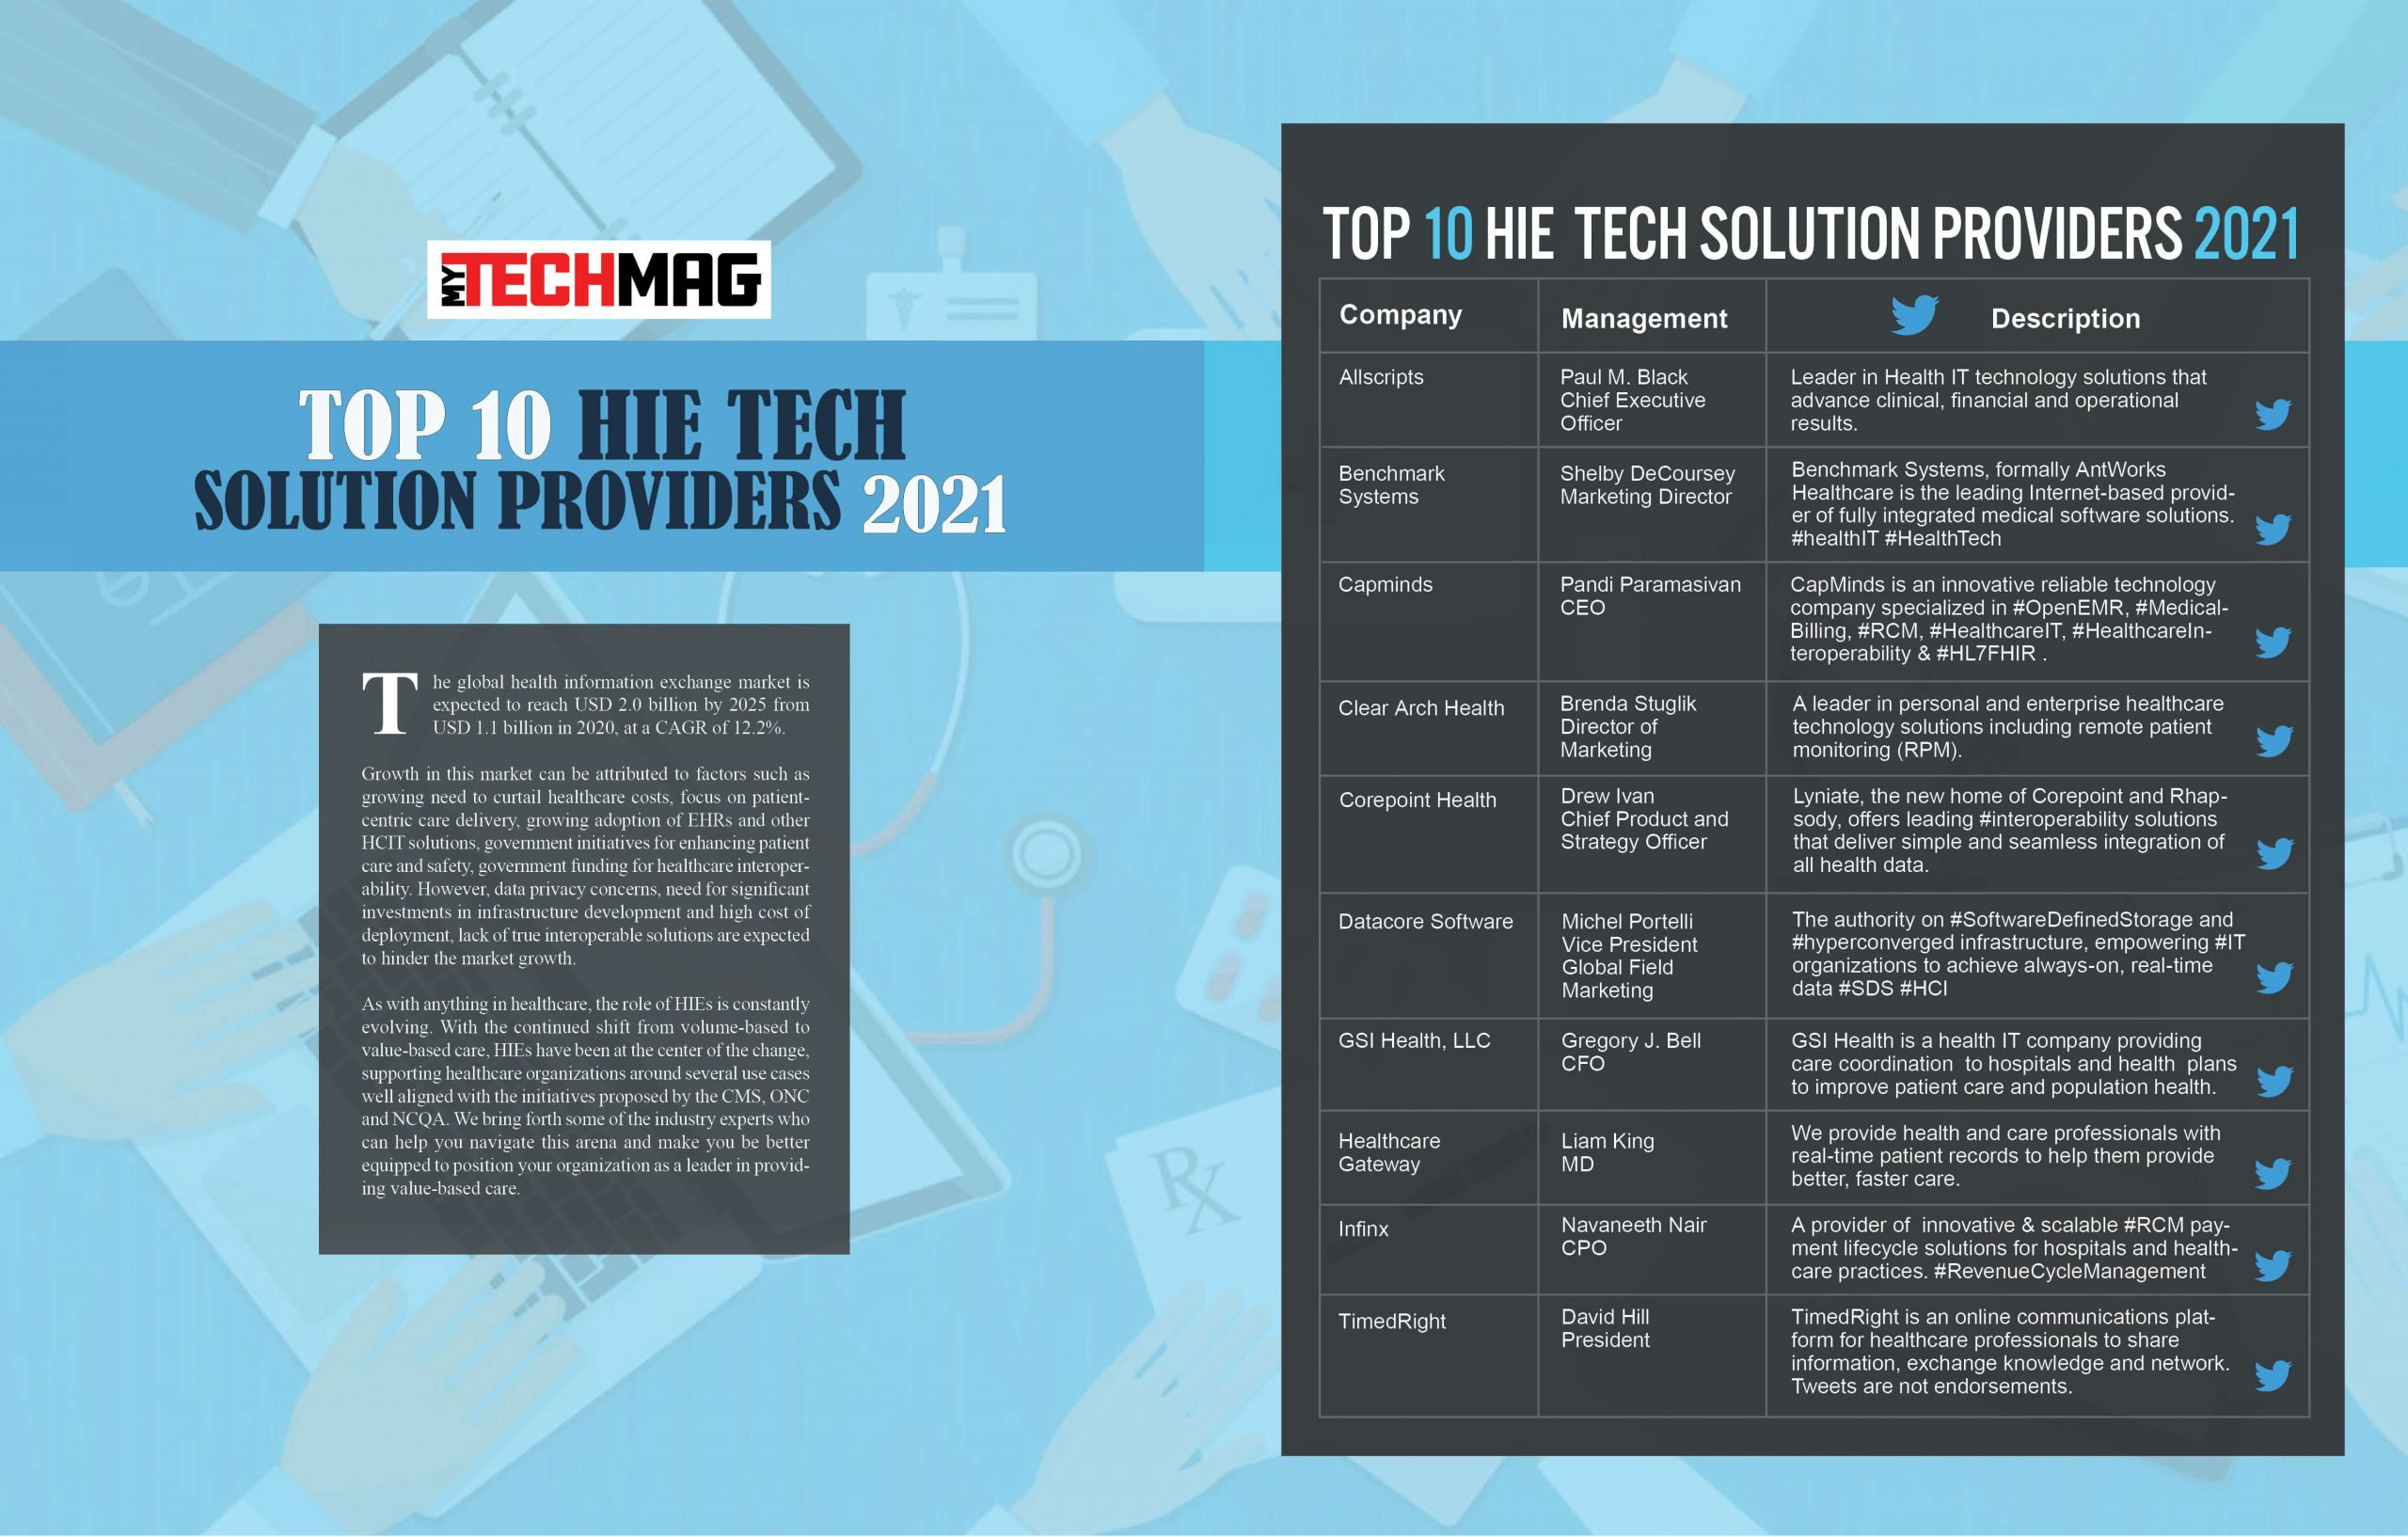 Top 10 HIE Tech Solution Providers 2021